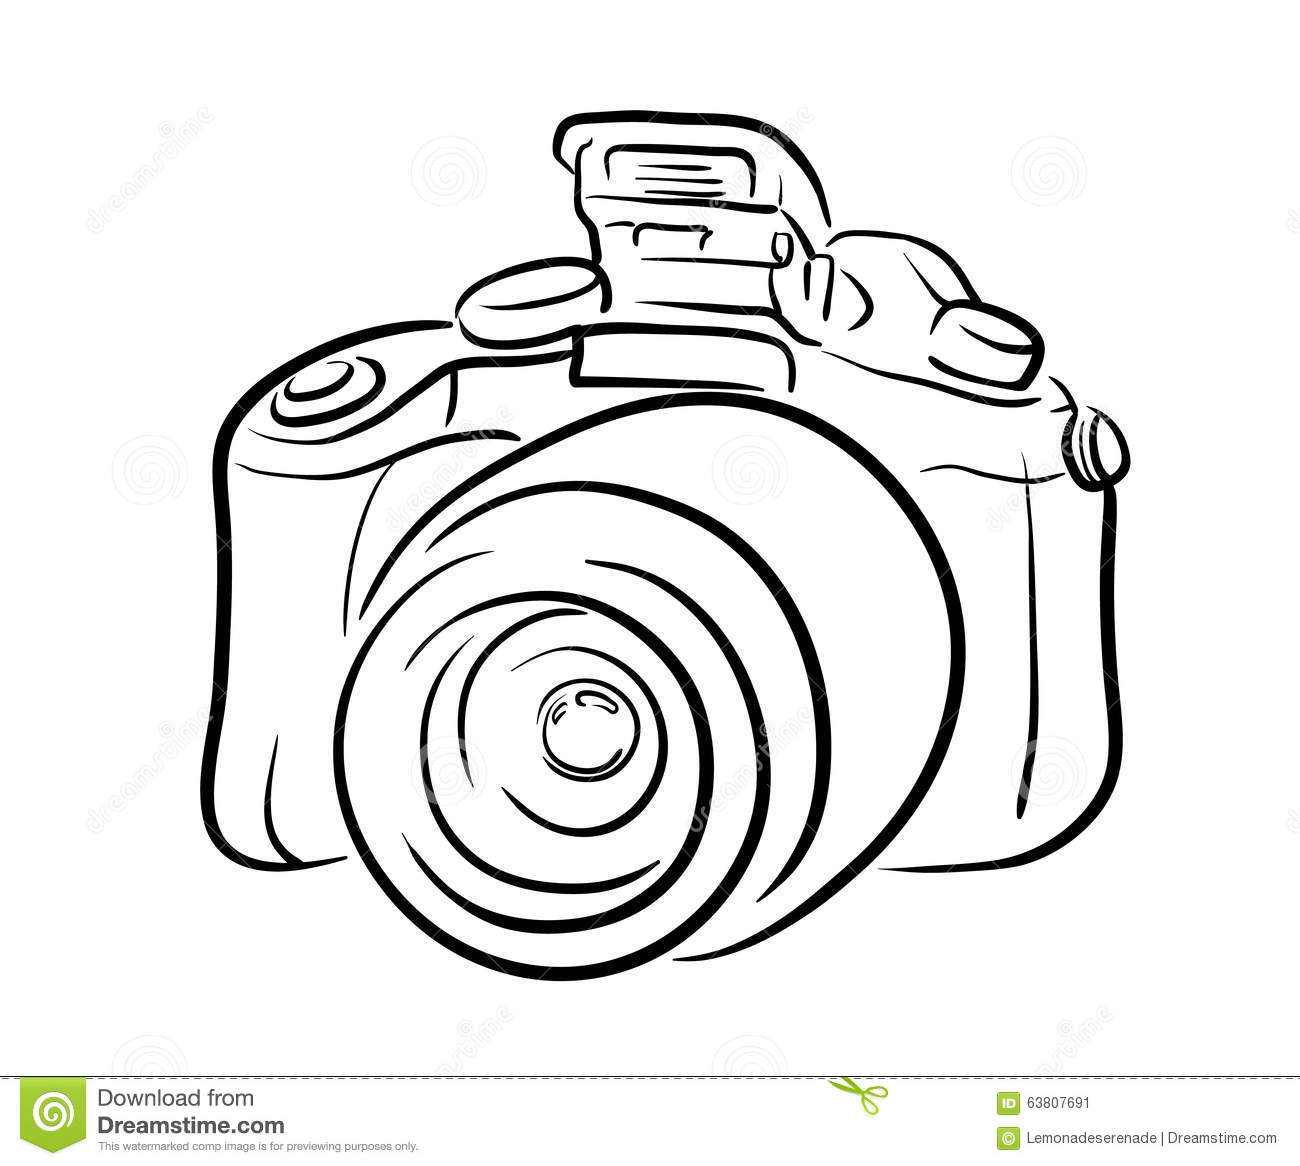 Drawing Vector Lines In Photo : Camera line icon solid vector illustration linear